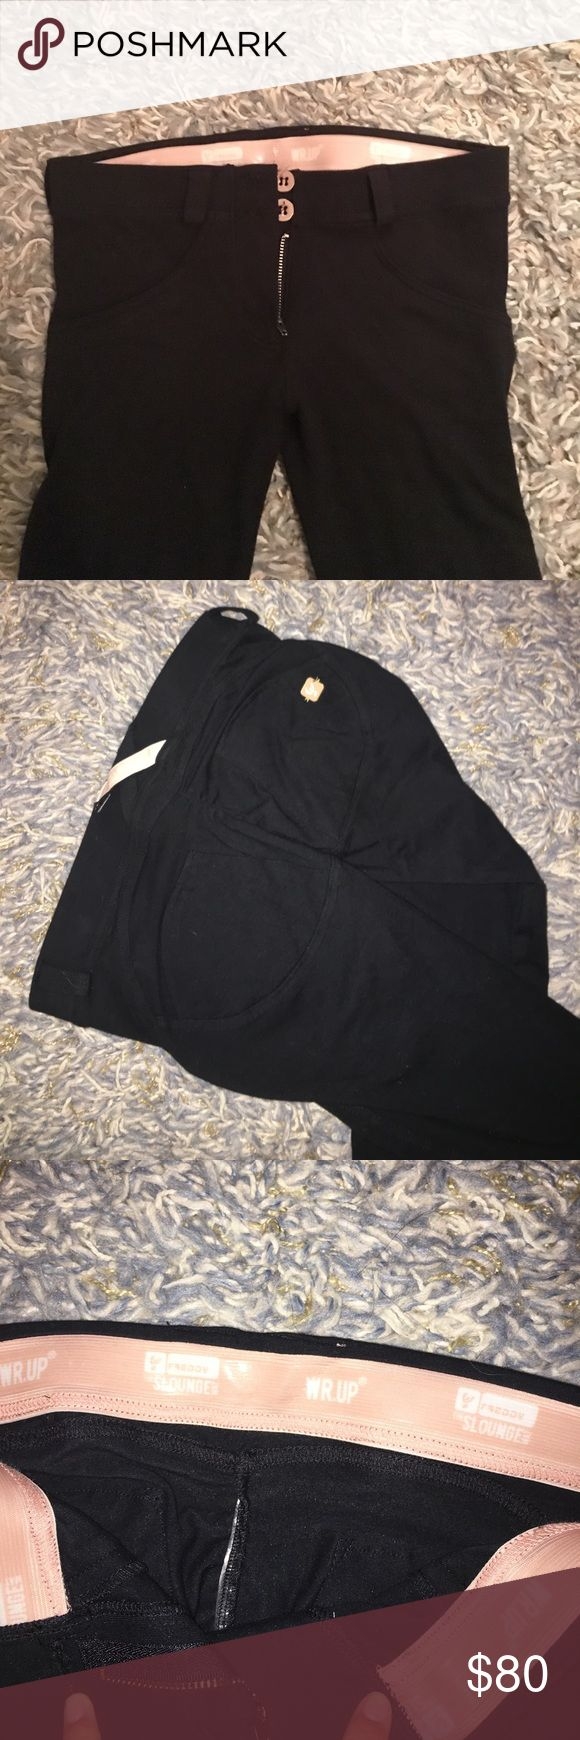 Freddy WR UP  Black Pants The figure flattering and booty lifting pants! Never worn! Freddy Pants Leggings